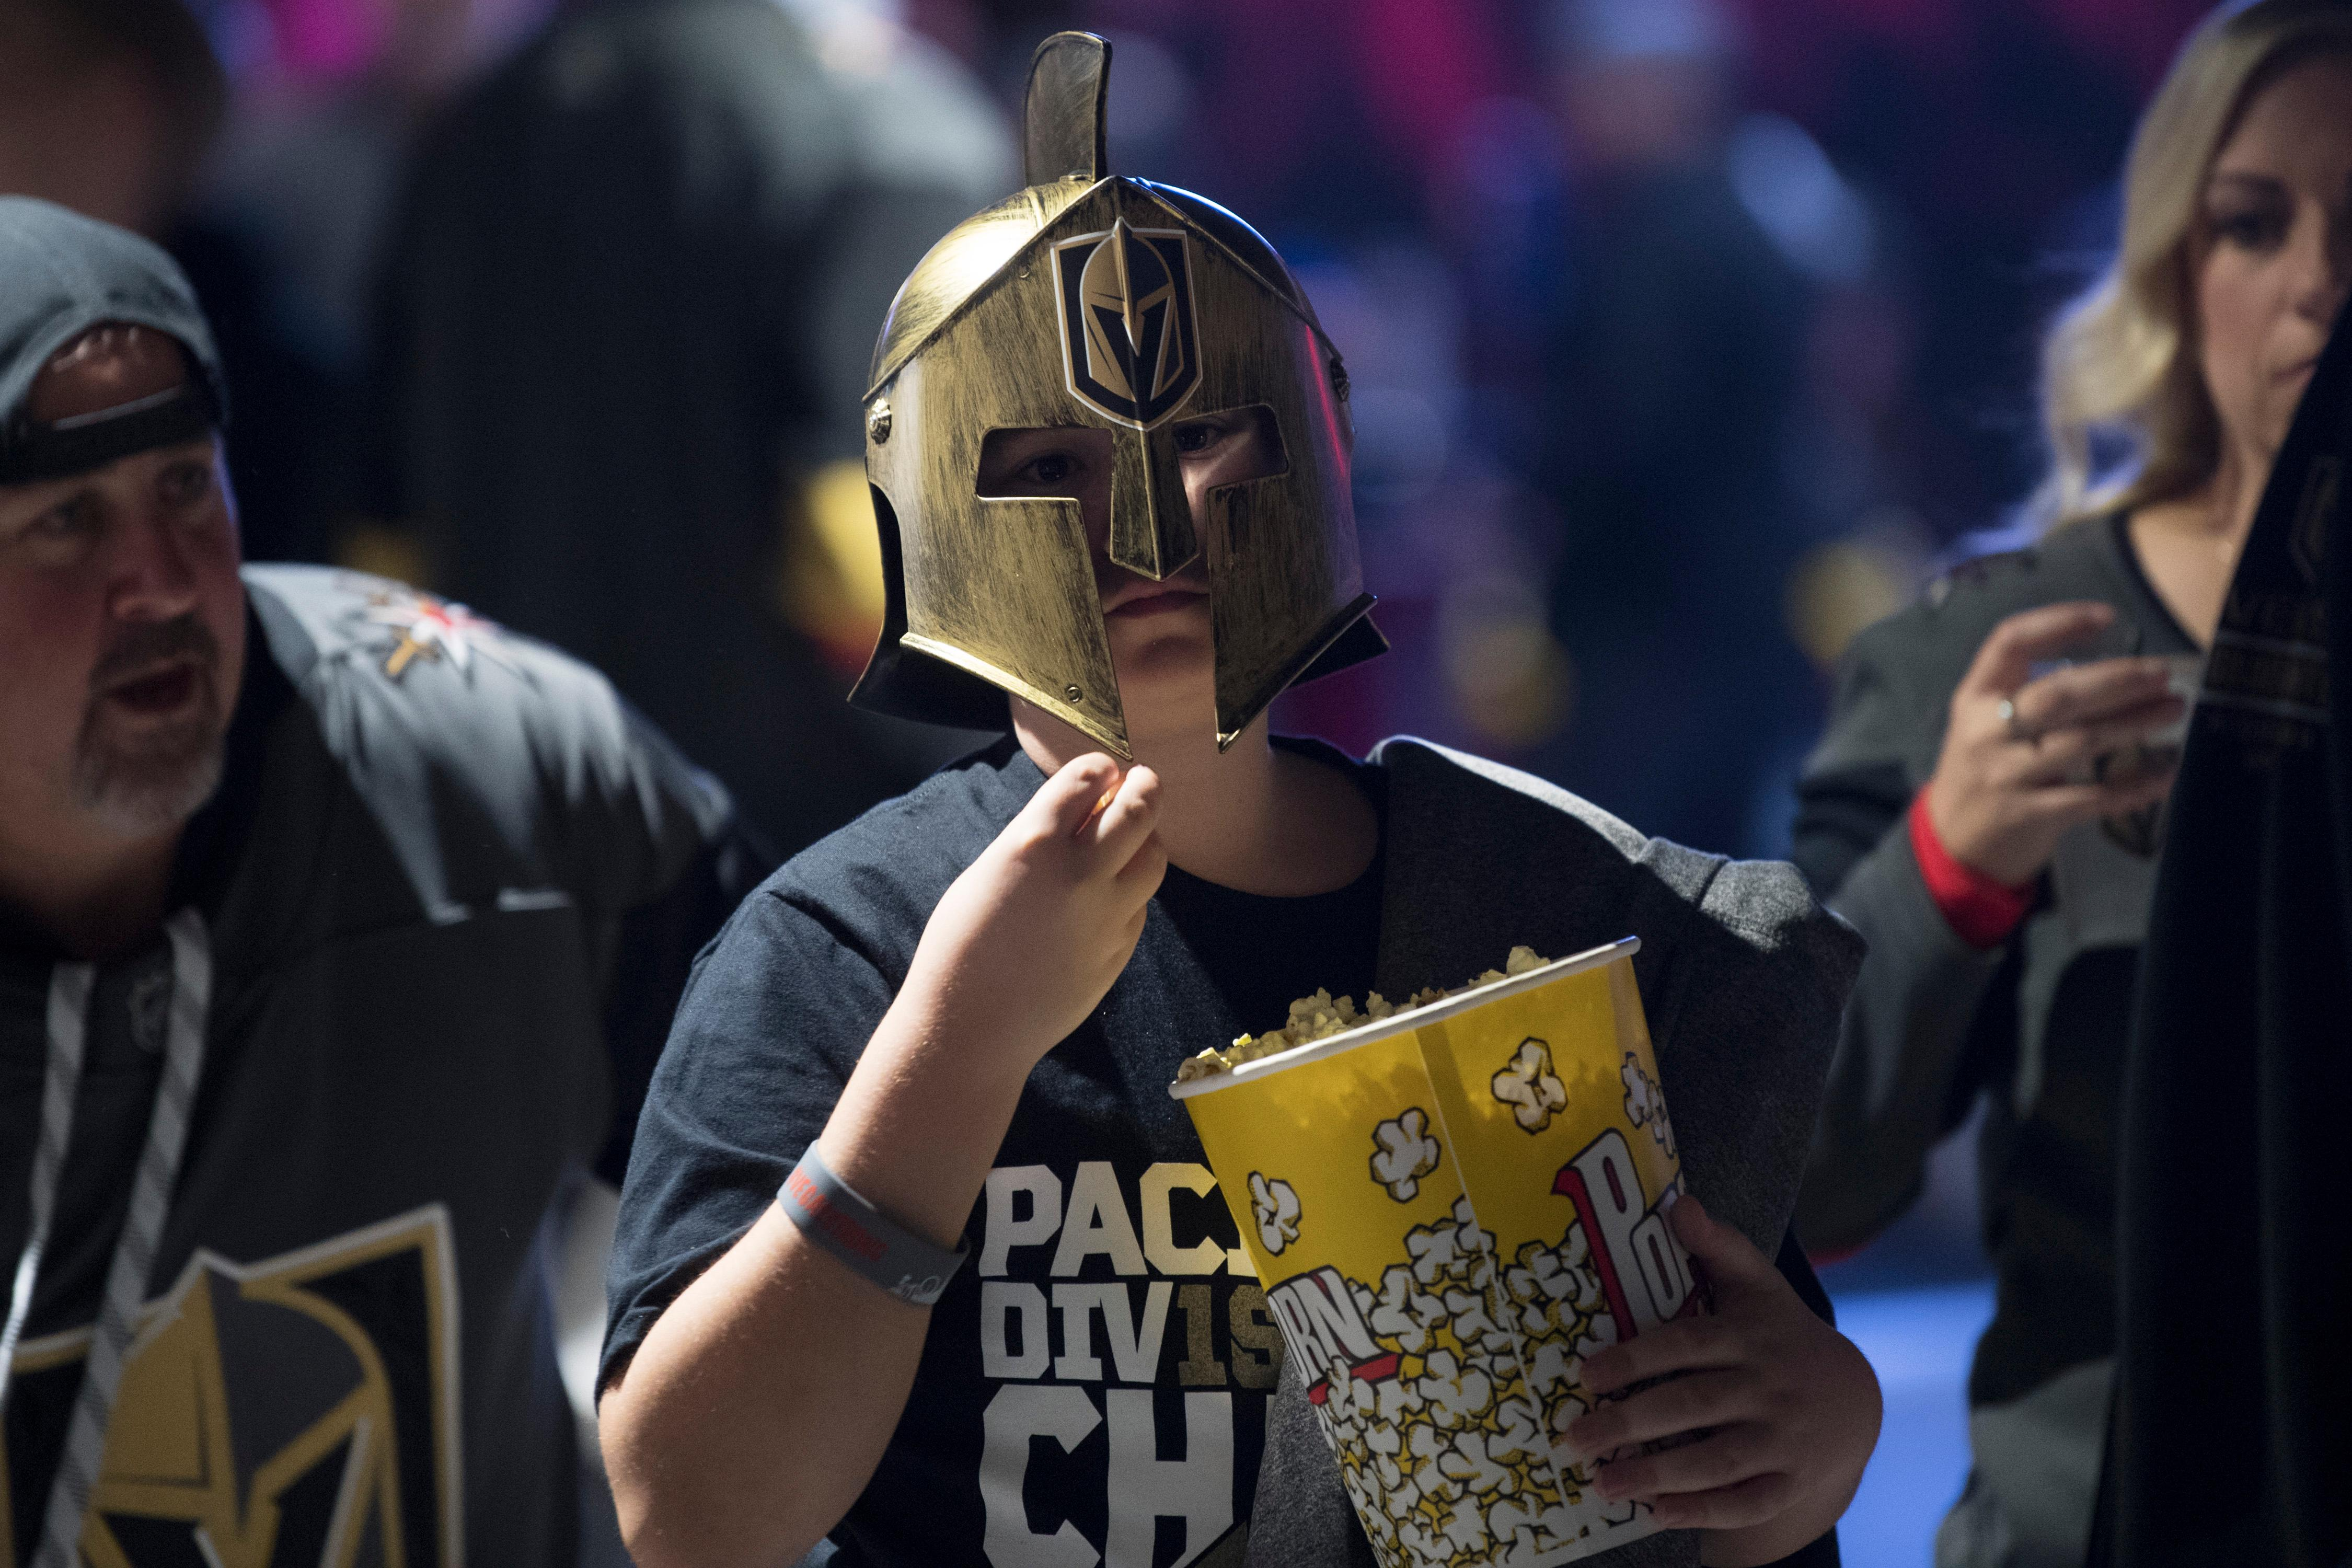 Gavyn Revelle munches popcorn between the first and second period of Game 1 of their NHL hockey first-round playoff series between the Vegas Golden Knights and the Los Angeles Kings Wednesday, April 11, 2018 at T-Mobile Arena. The Knights won 1-0. CREDIT: Sam Morris/Las Vegas News Bureau